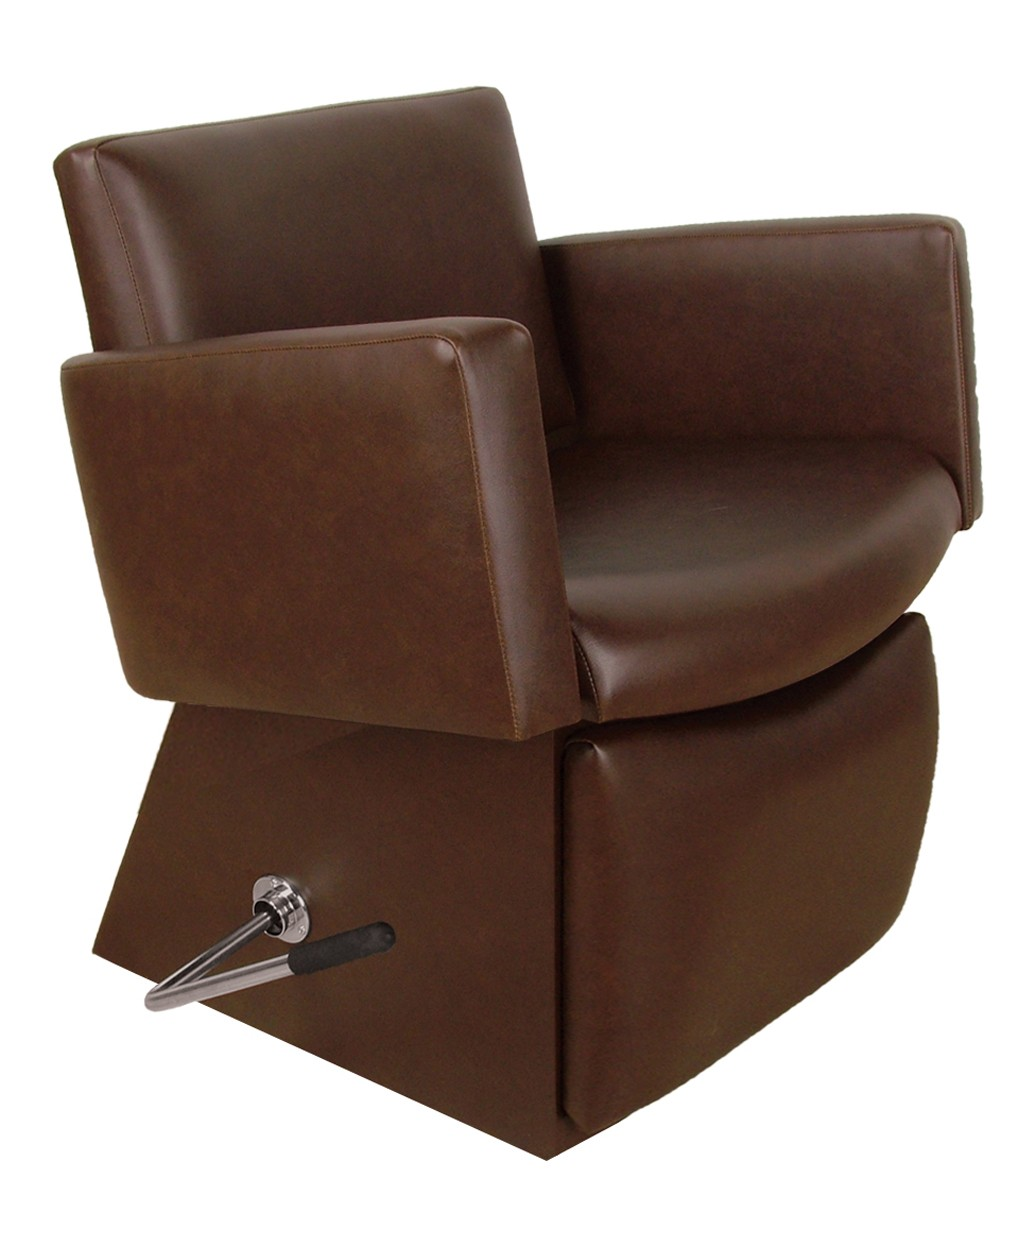 Collins - Cigno Shampoo Chair with Kickout Legrest